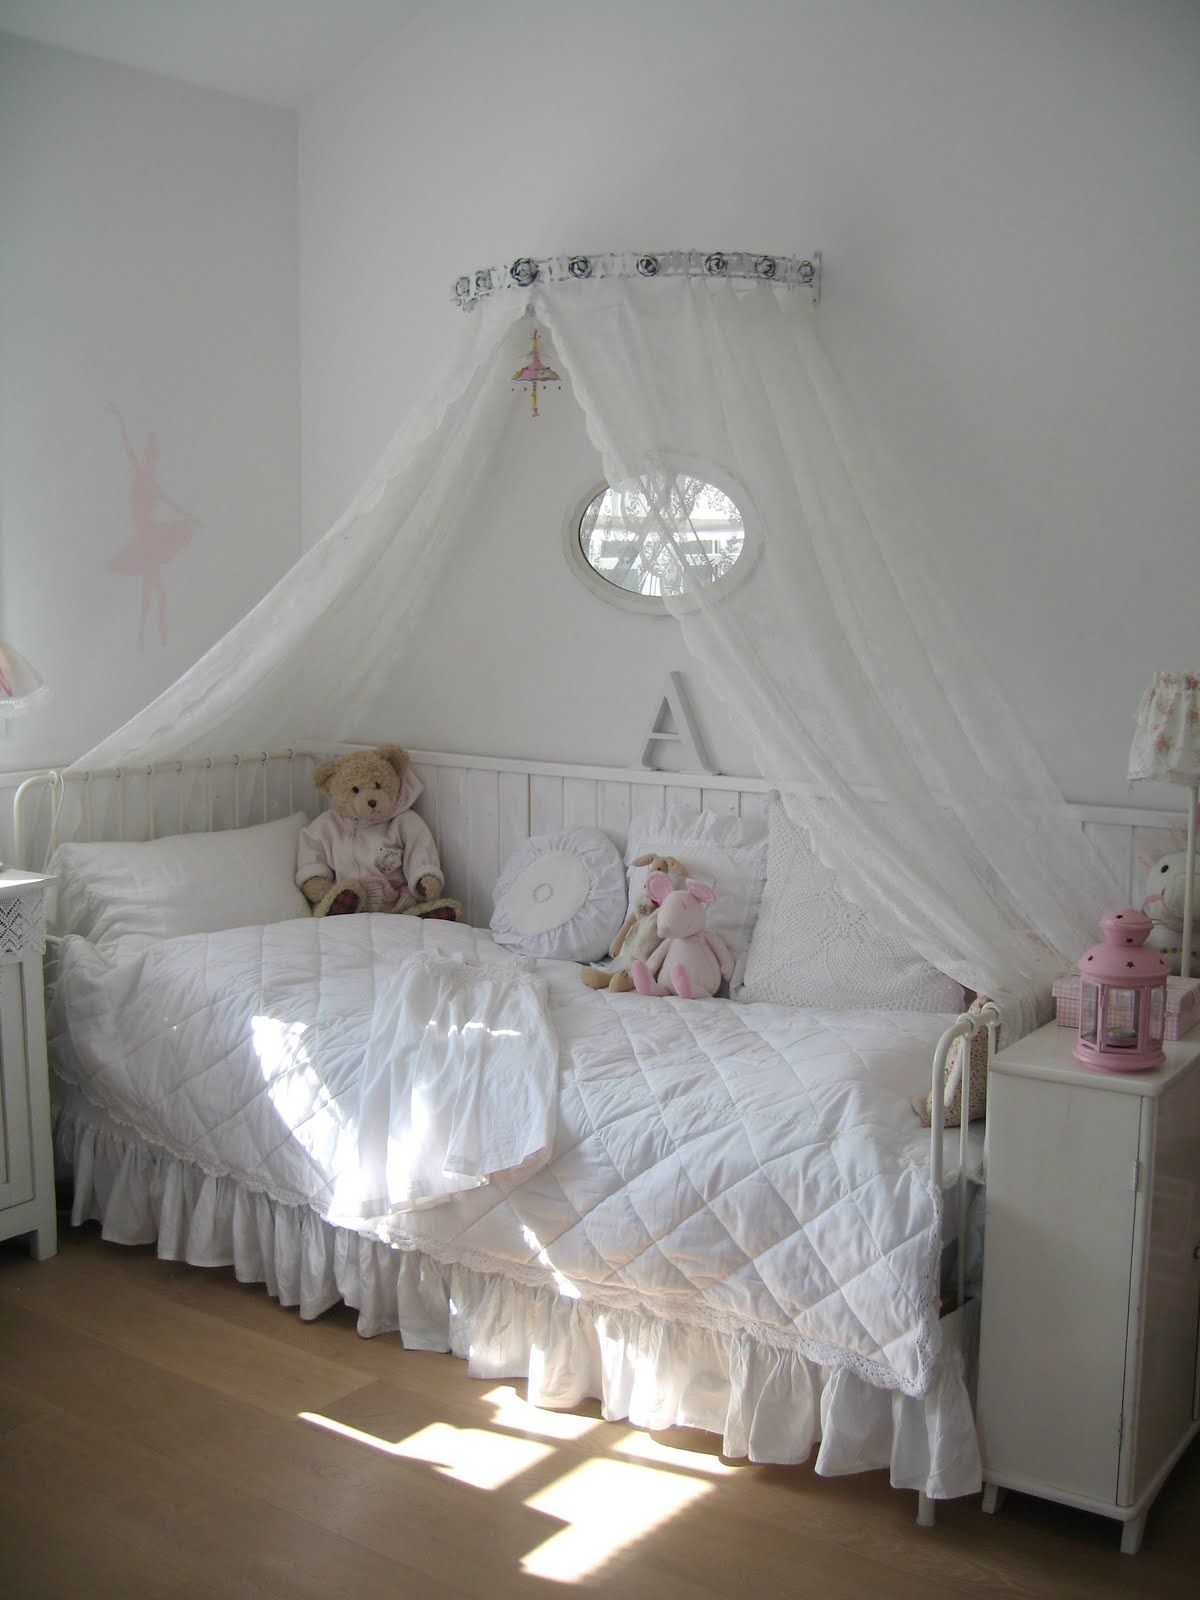 Girls Bedroom Whitewashed Cottage Chippy Shabby Chic French Country Rustic Swedish Decor Idea Shabby Chic Girl Room Girls Room Design Girly Bedroom